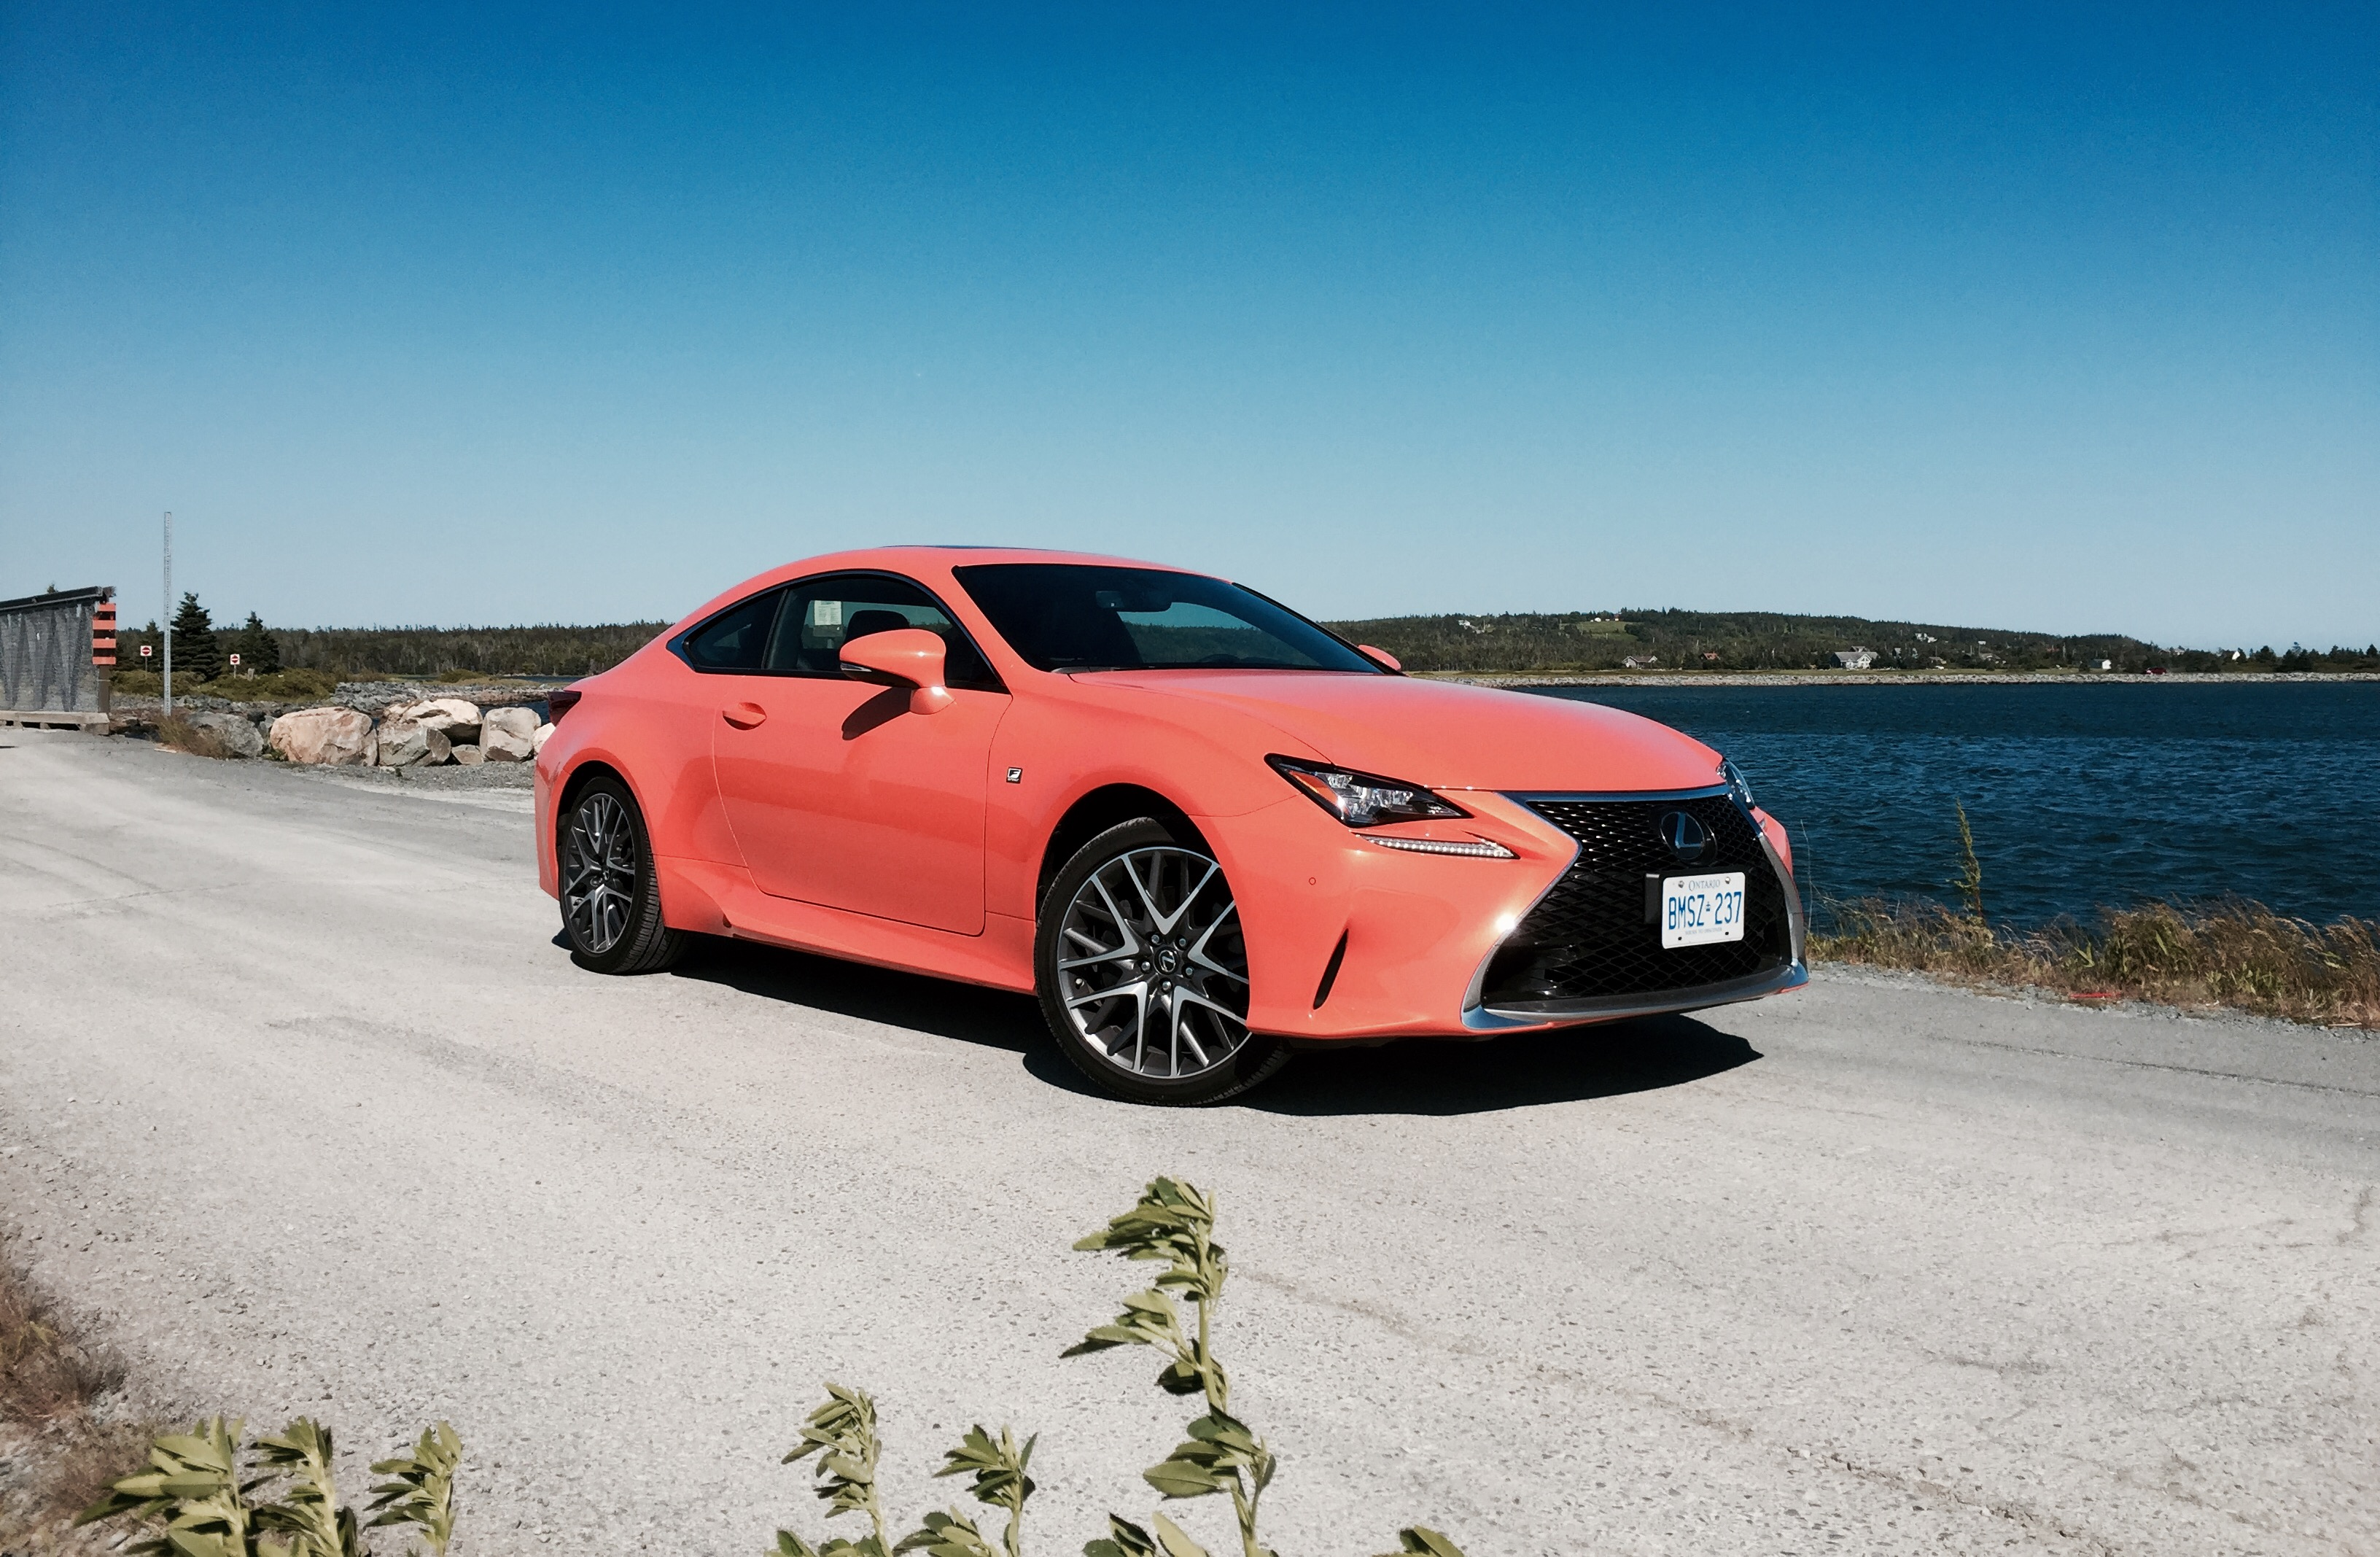 2016 Lexus Rc 350 F Sport Review Slower Than It Looks Better The Truth About Cars